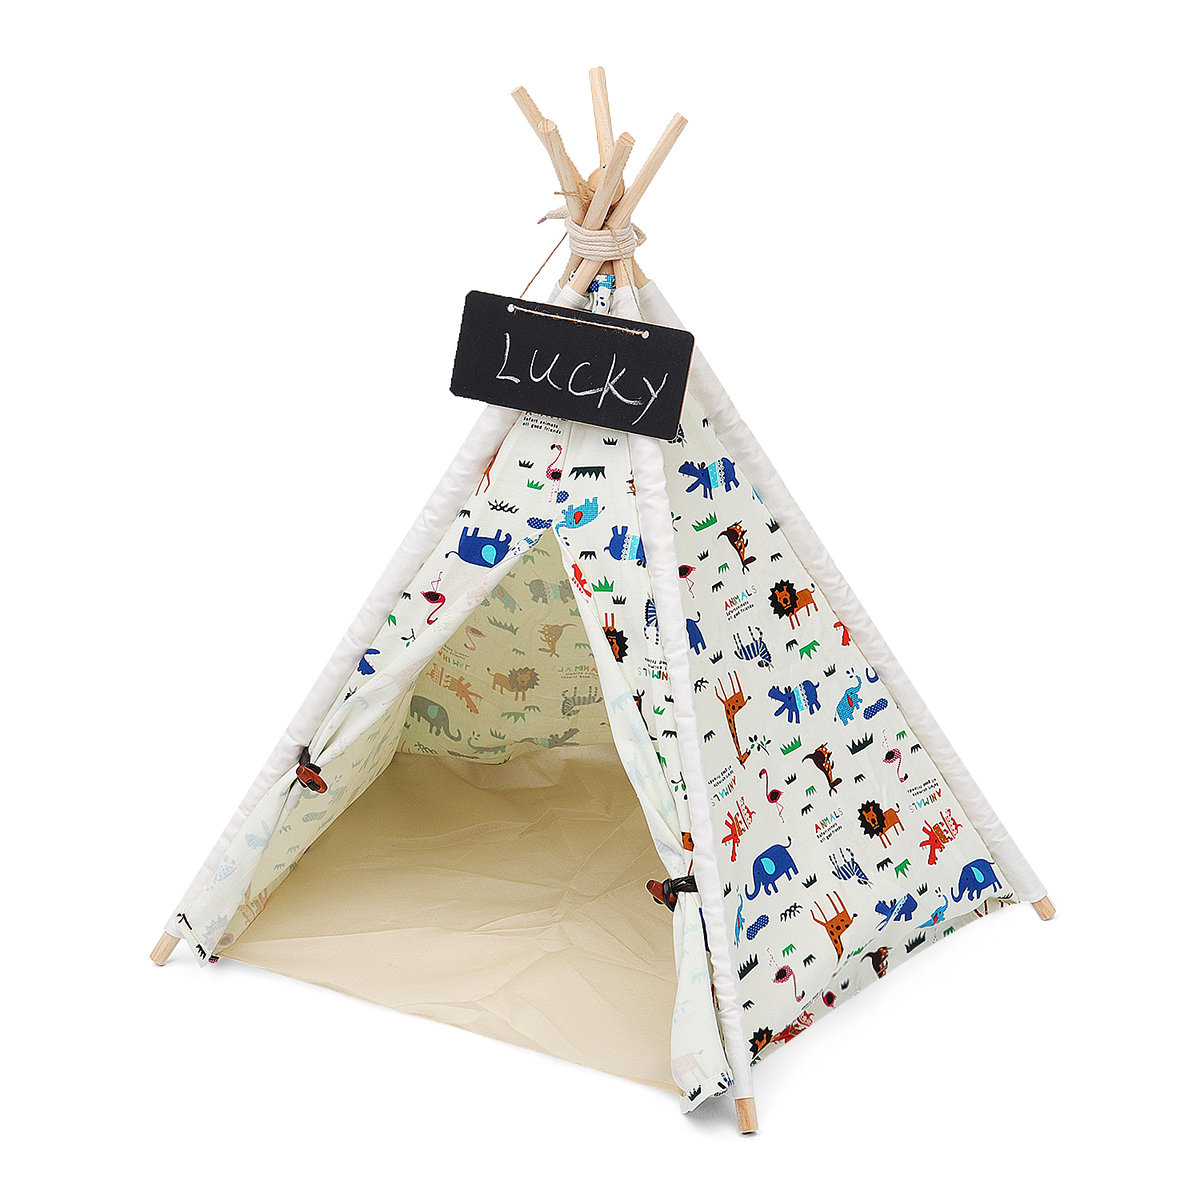 Pets Teepee Tent Dogs Home Canvas Pretend Play Playhouse Tipi Outdoor Indoor